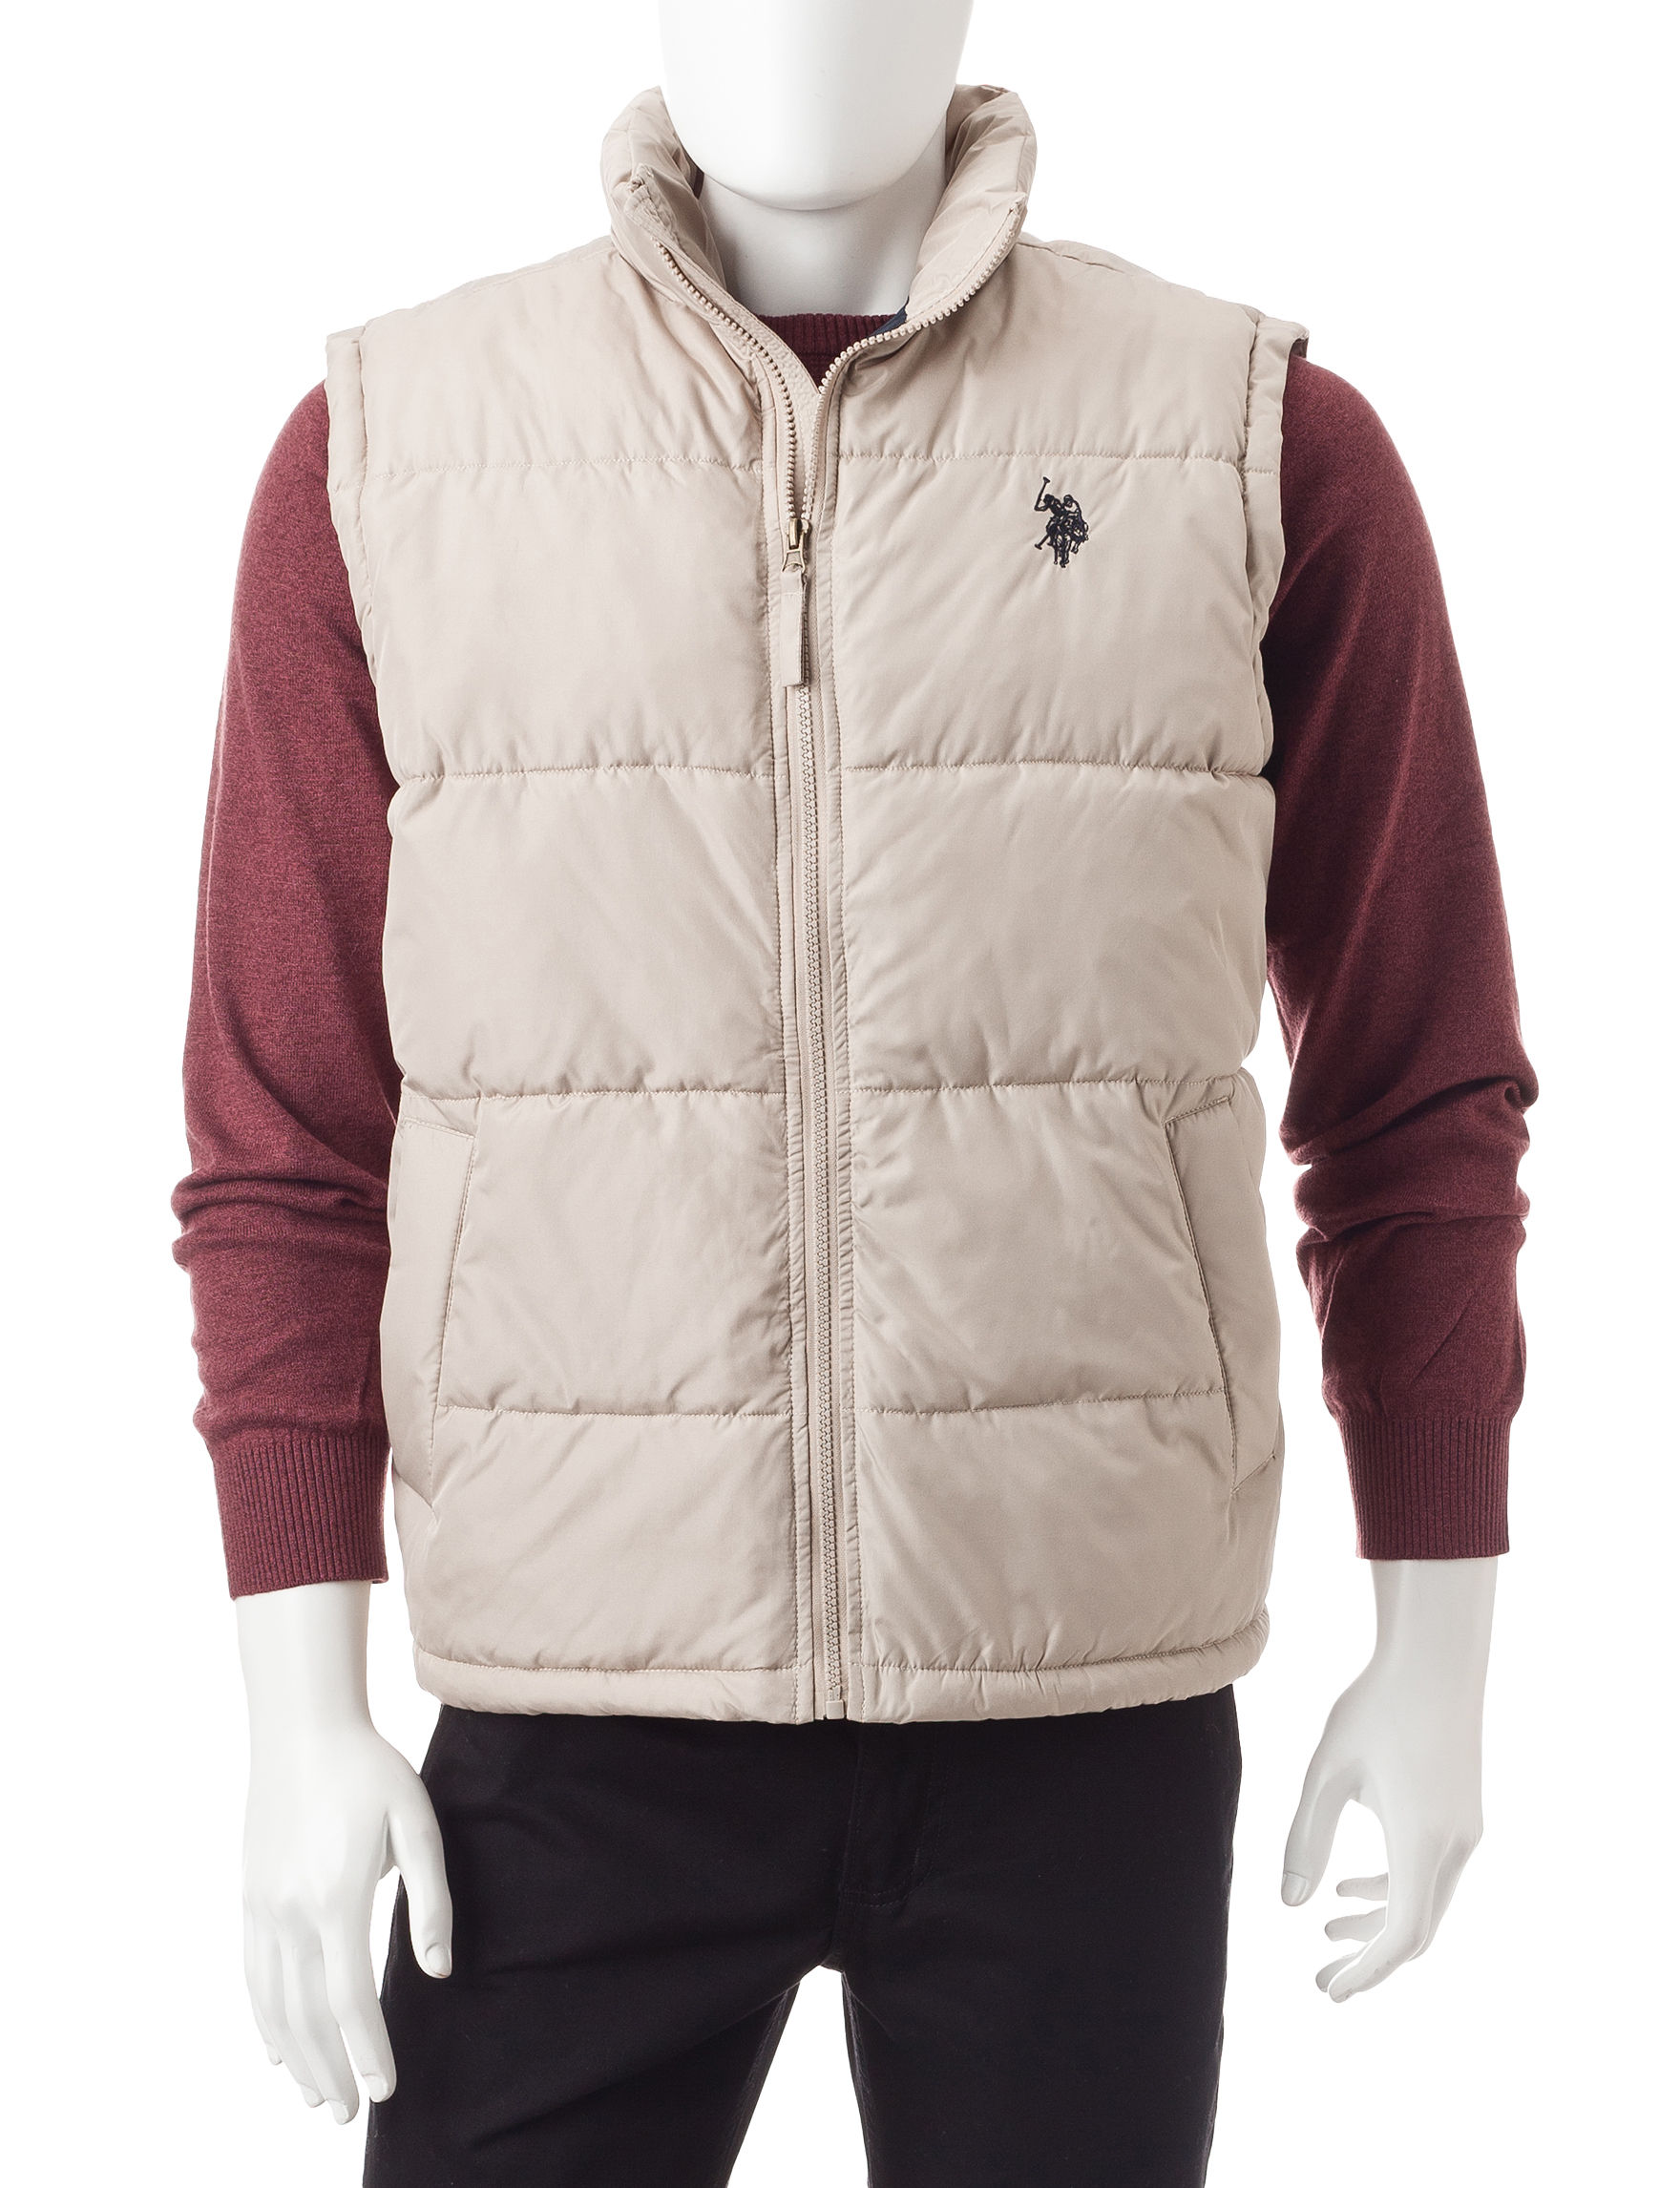 U.S. Polo Assn. Khaki Puffer & Quilted Jackets